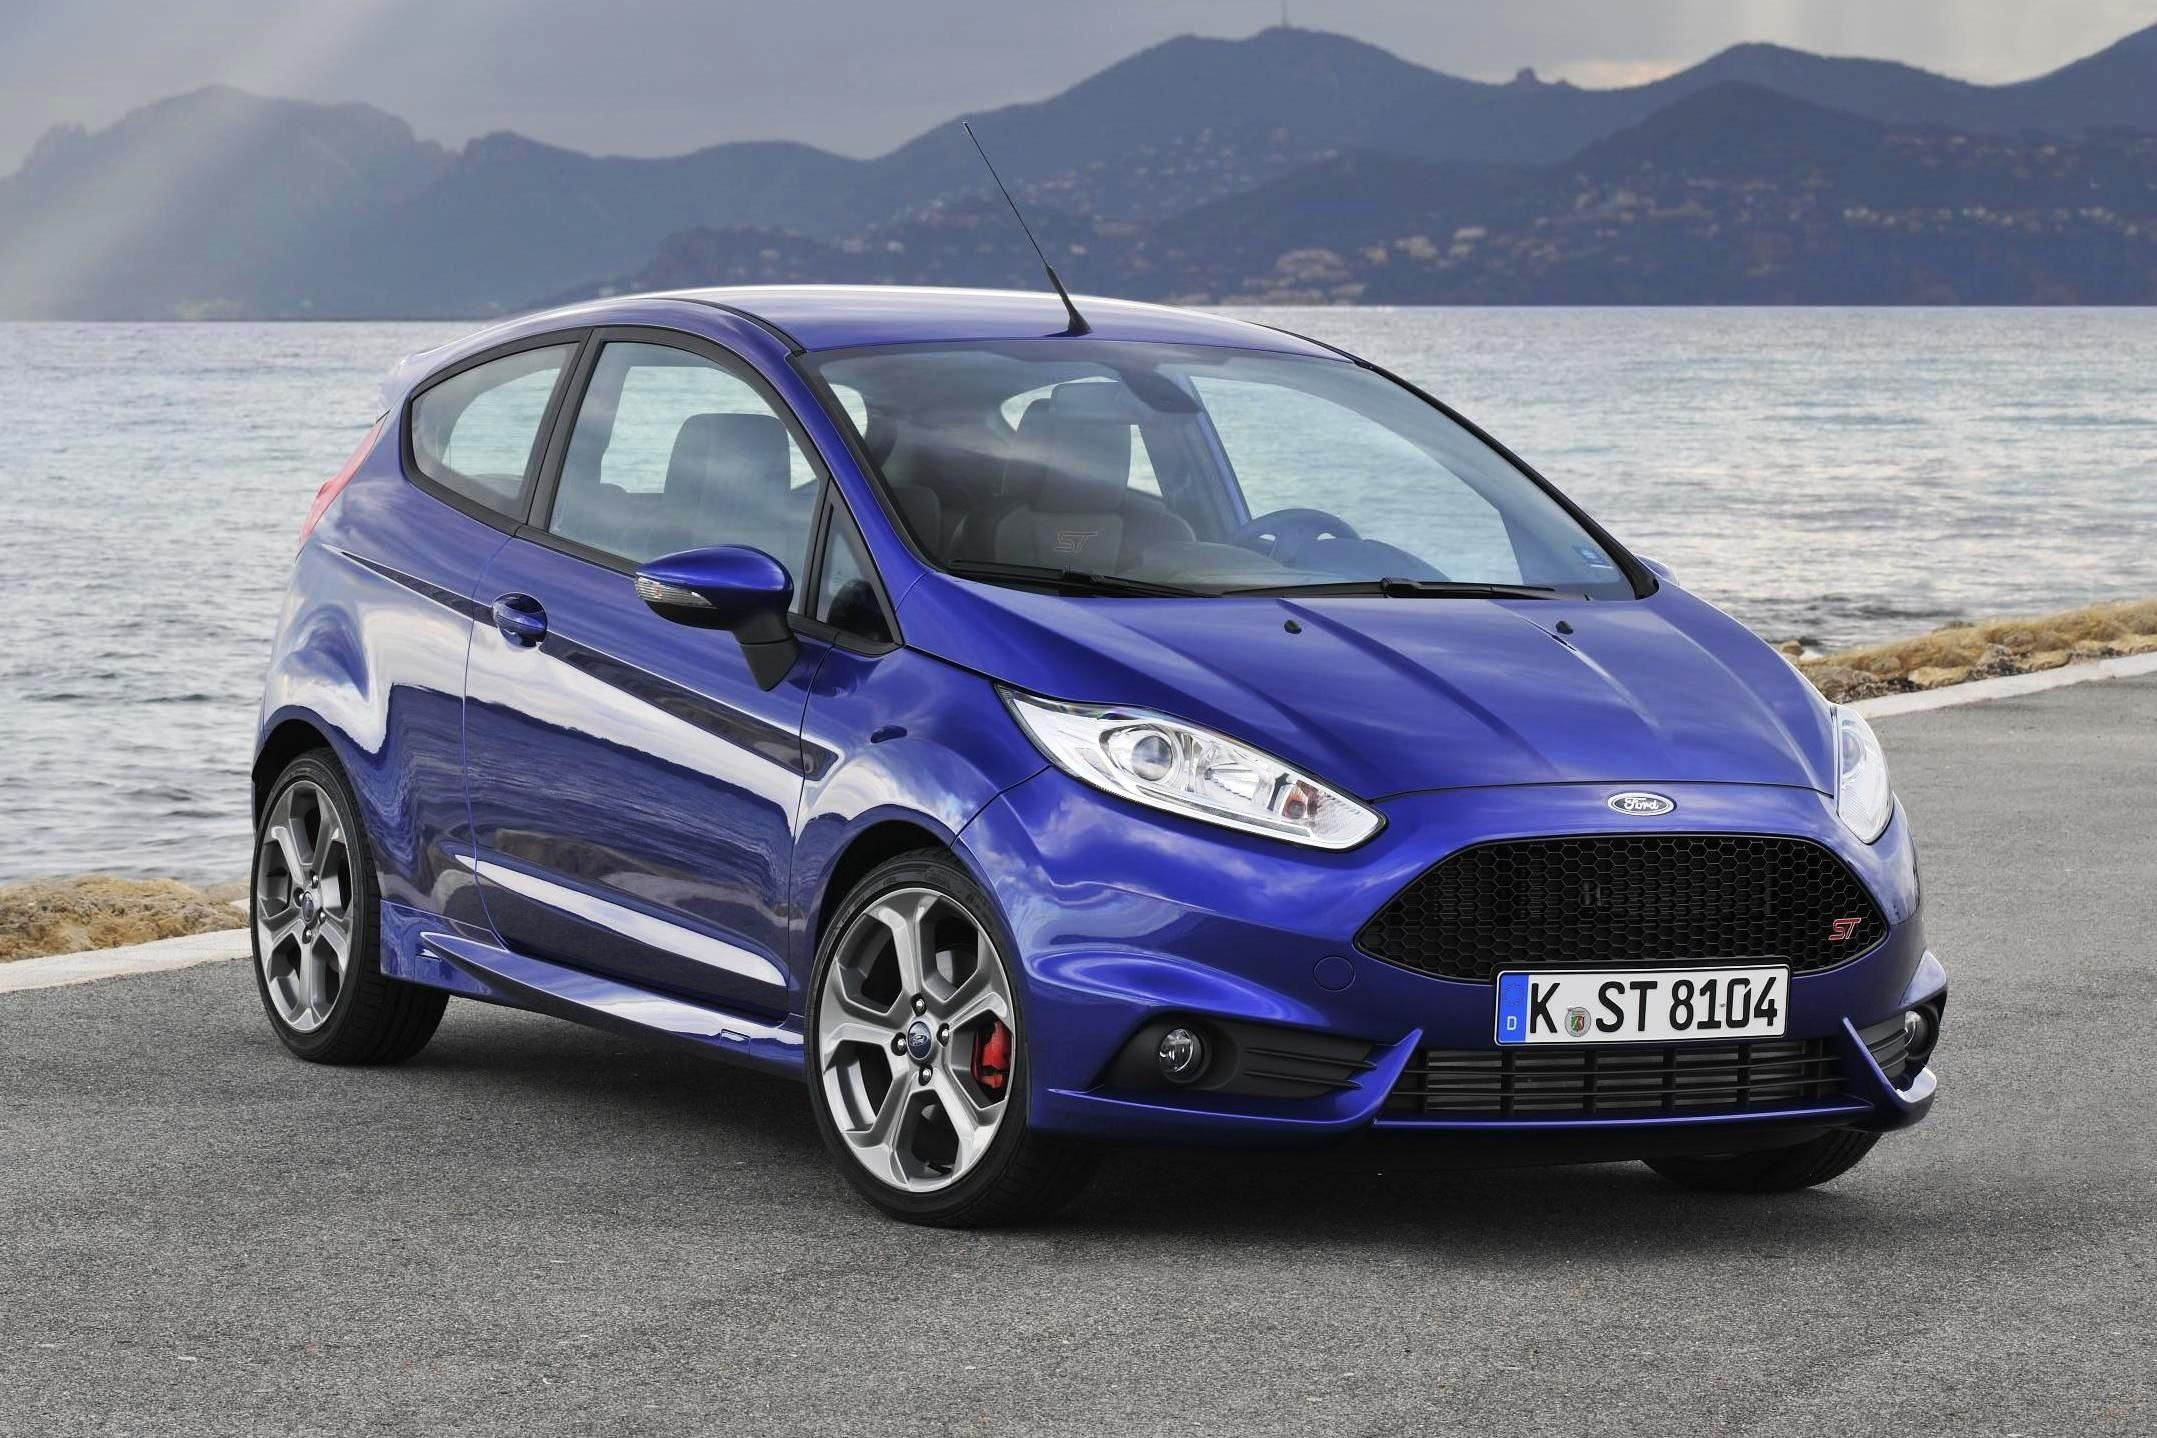 2015 ford fiesta st amazing in everyway the fiesta st delivers a sense of